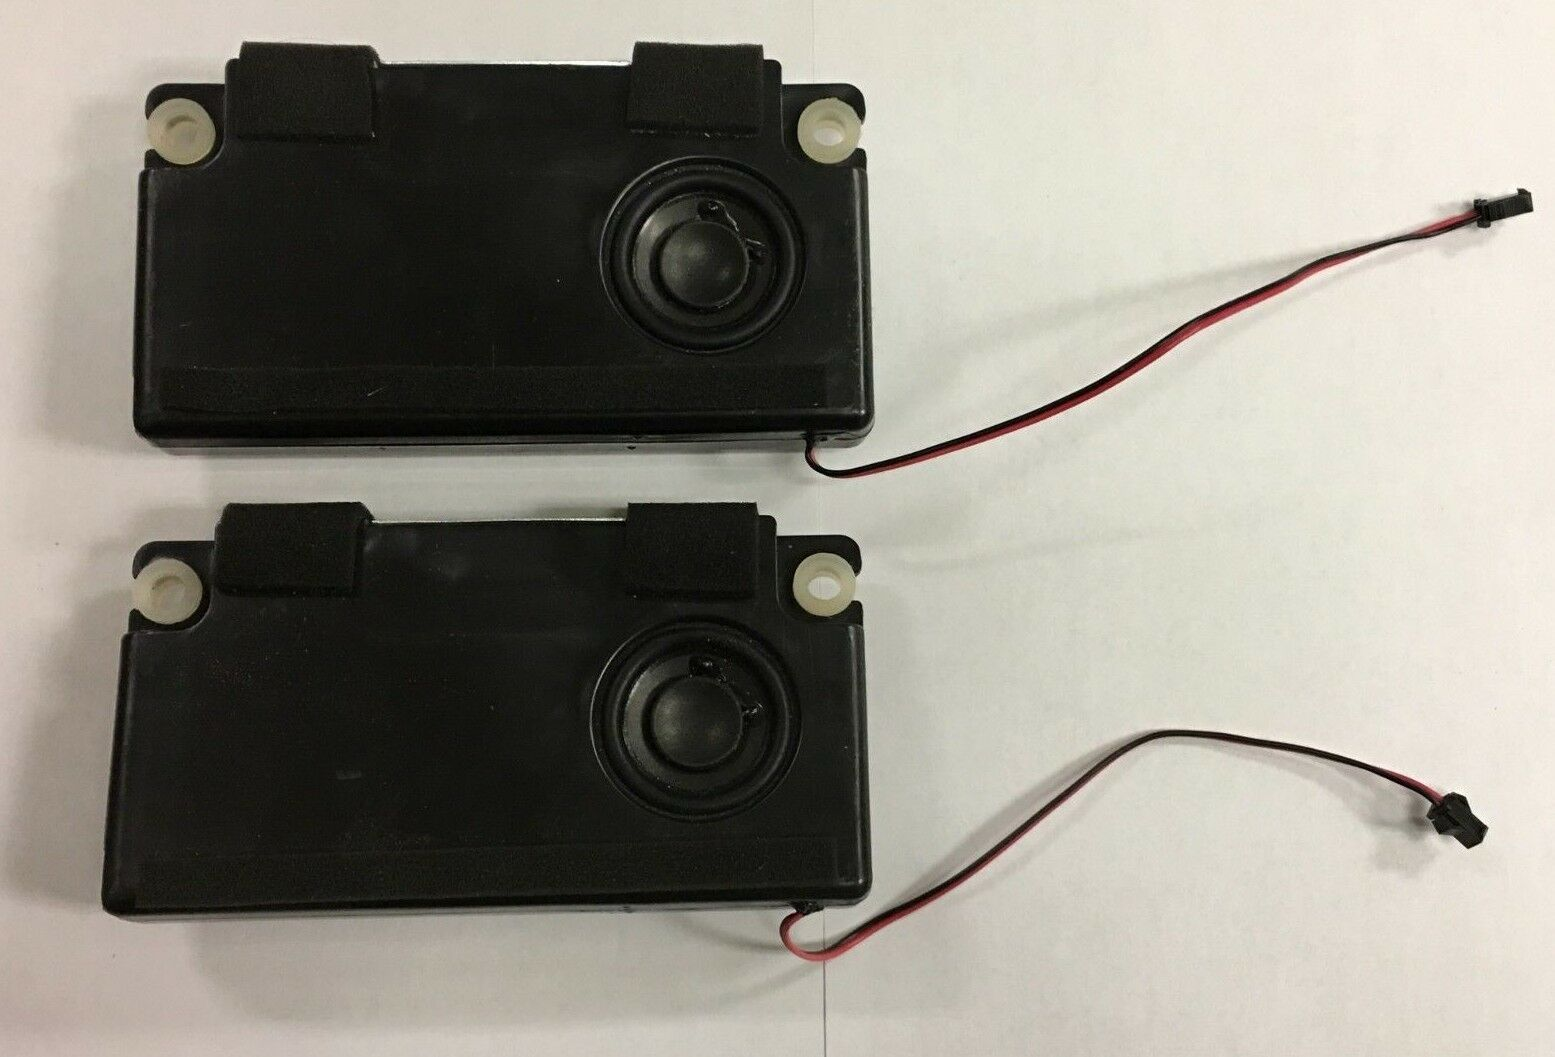 Primary image for SET OF 2 HISENSE INTERNAL SPEAKERS VIT90170 10223, FREE SHIPPING